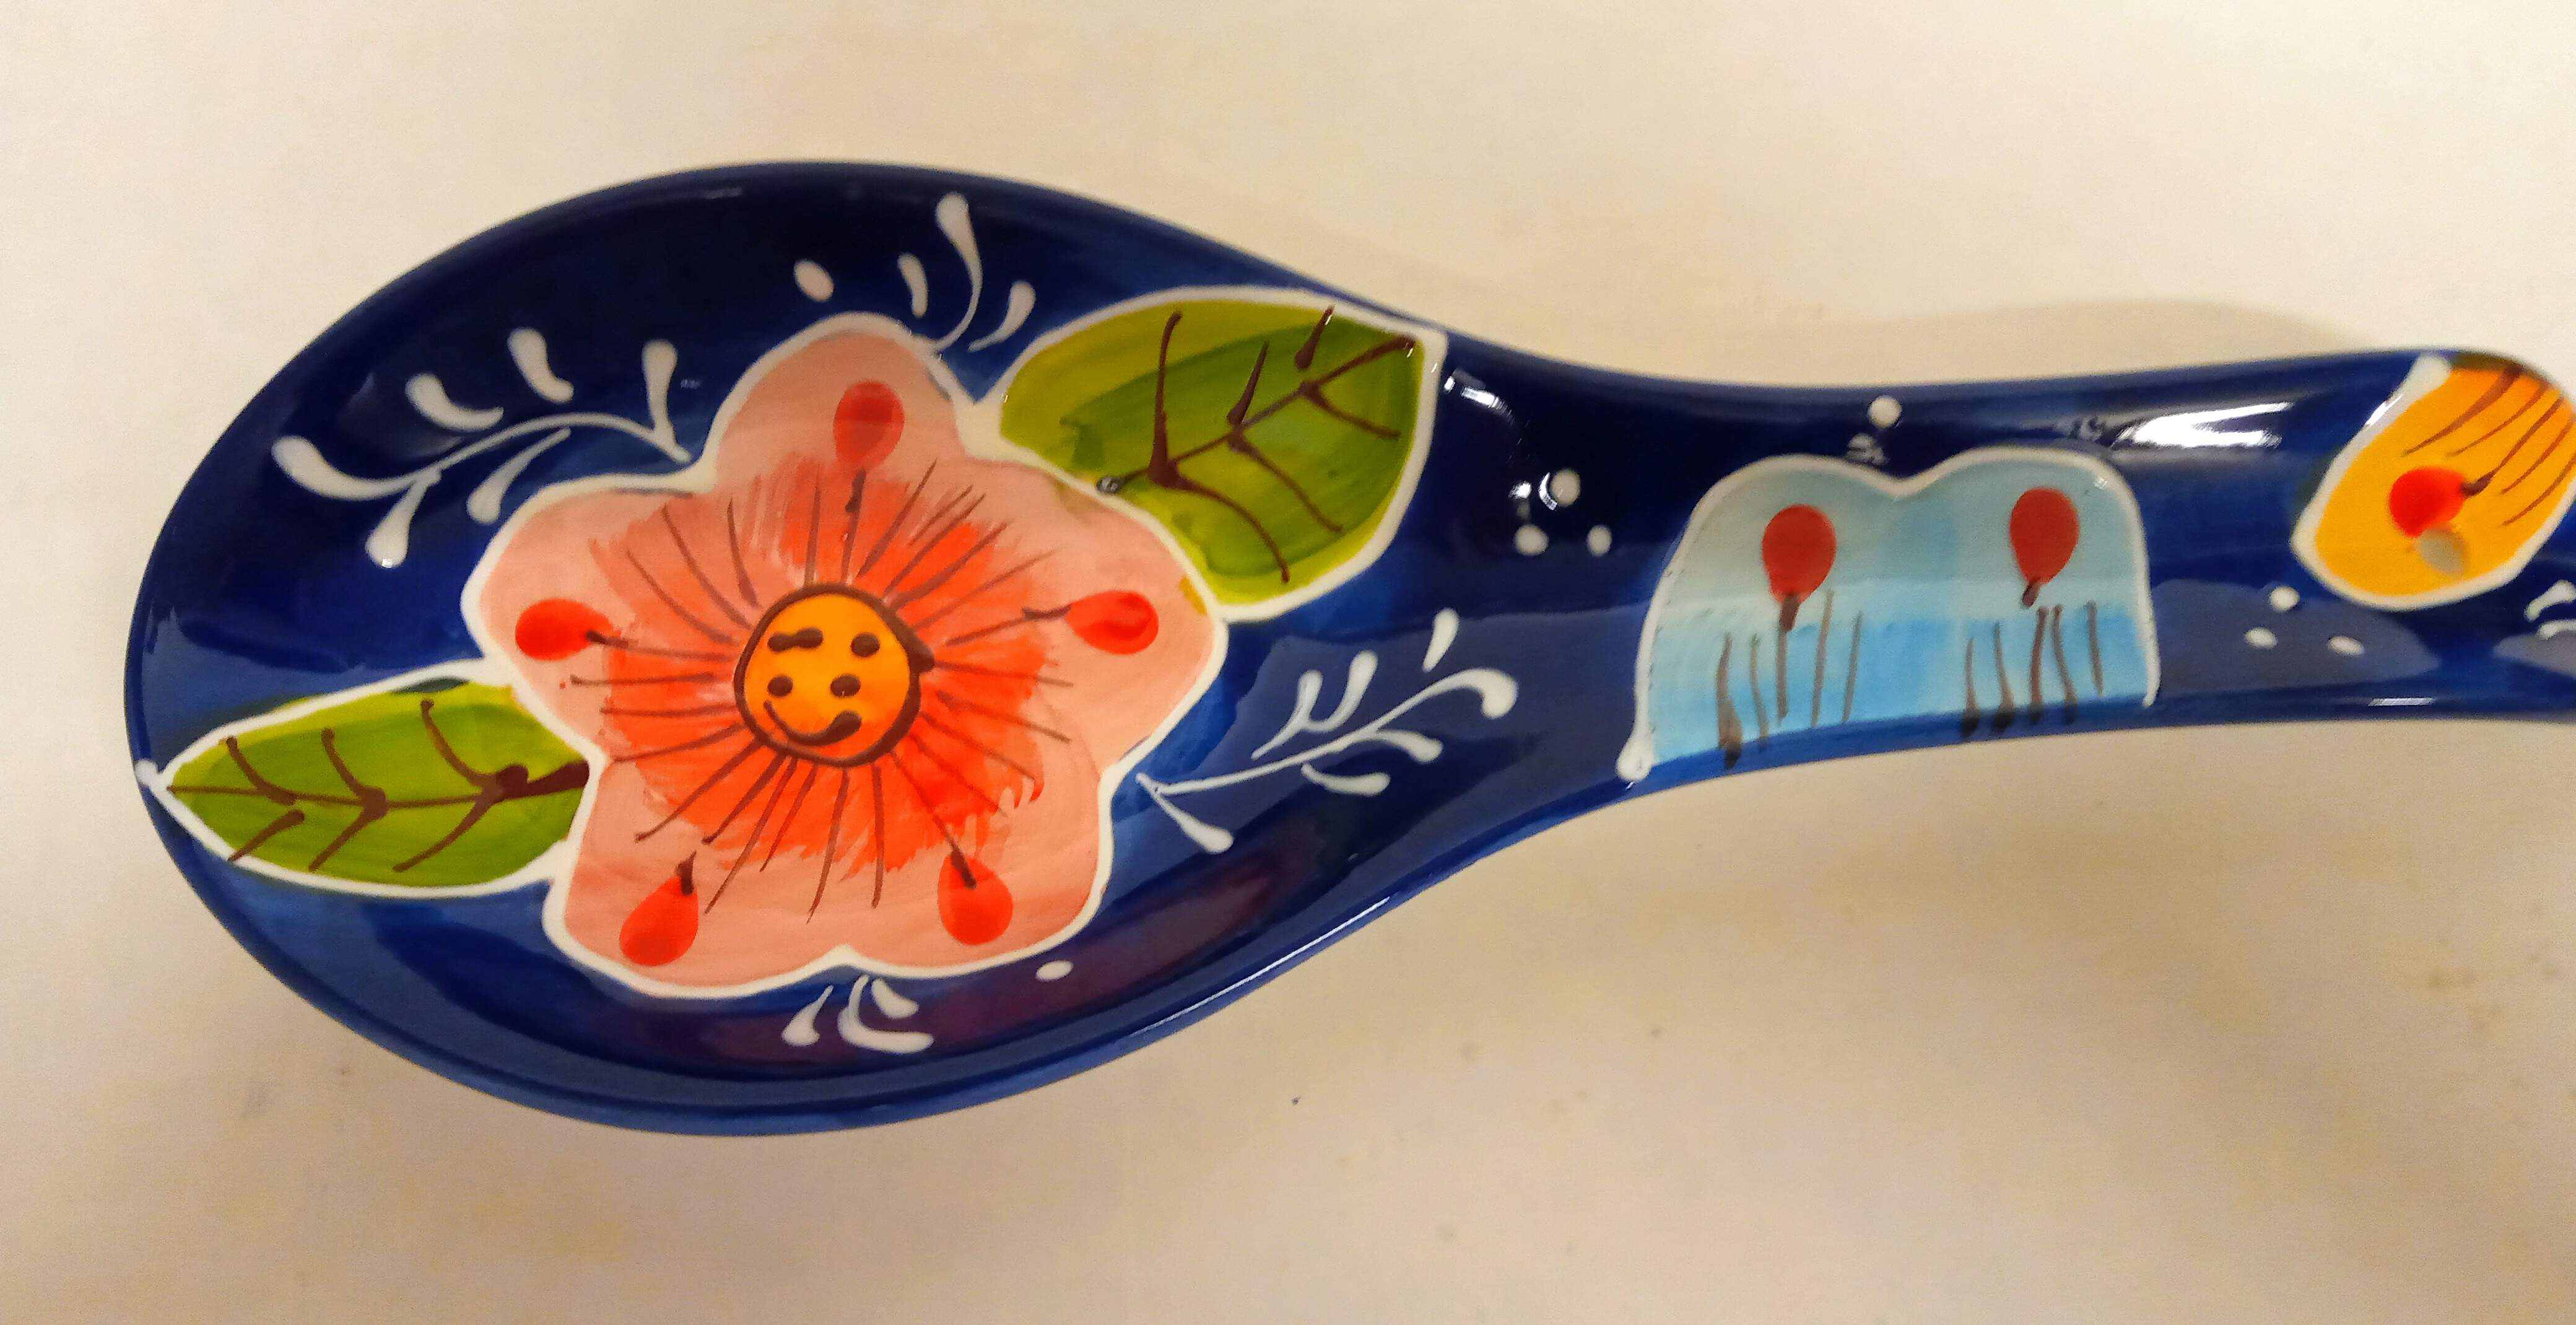 Spanish ceramic spoon rest with two fish design